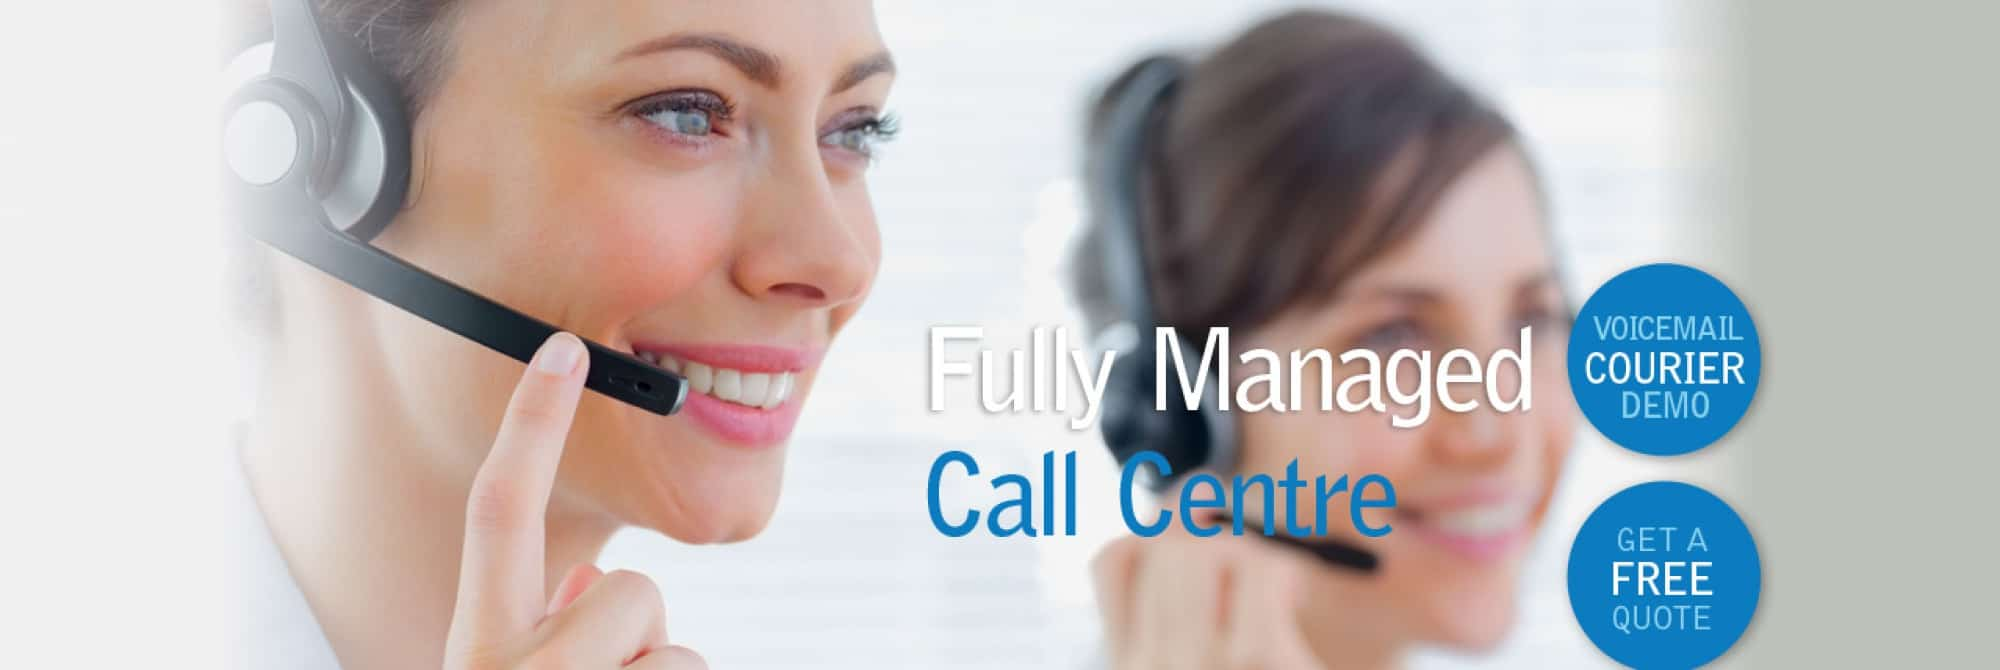 Fully Managed Call Centre